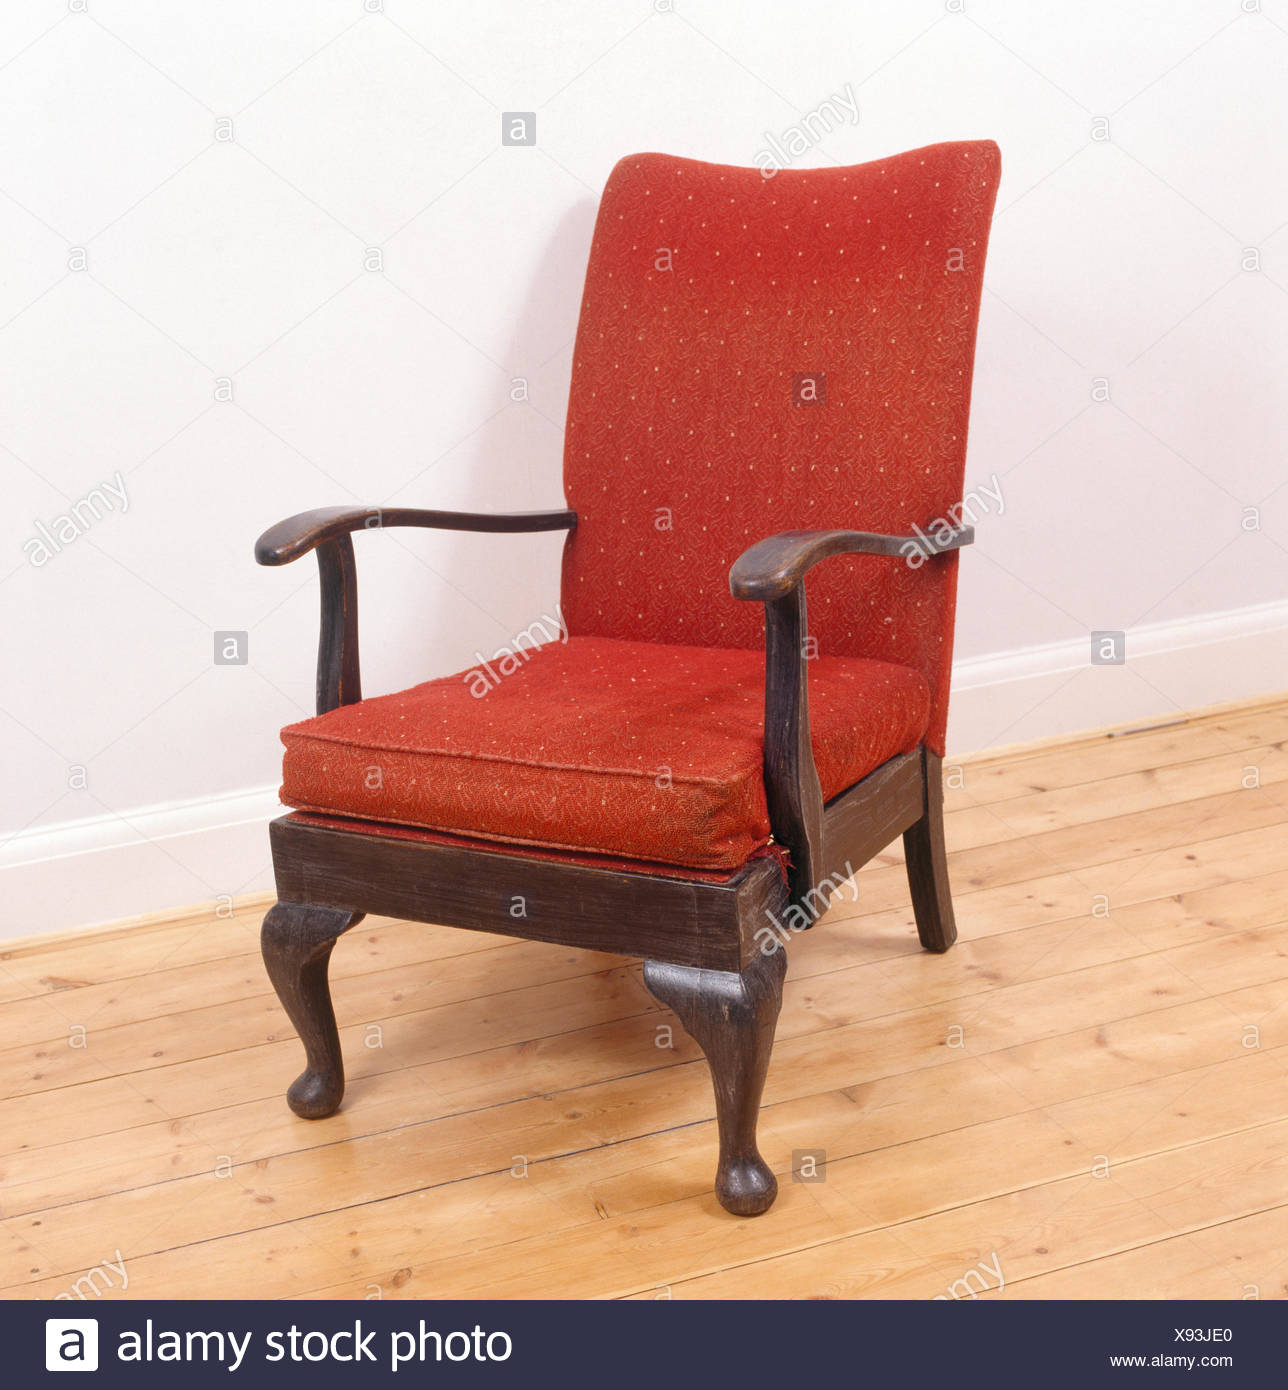 Close-up of old fashioned wood framed chair with red upholstered seat - Stock Image